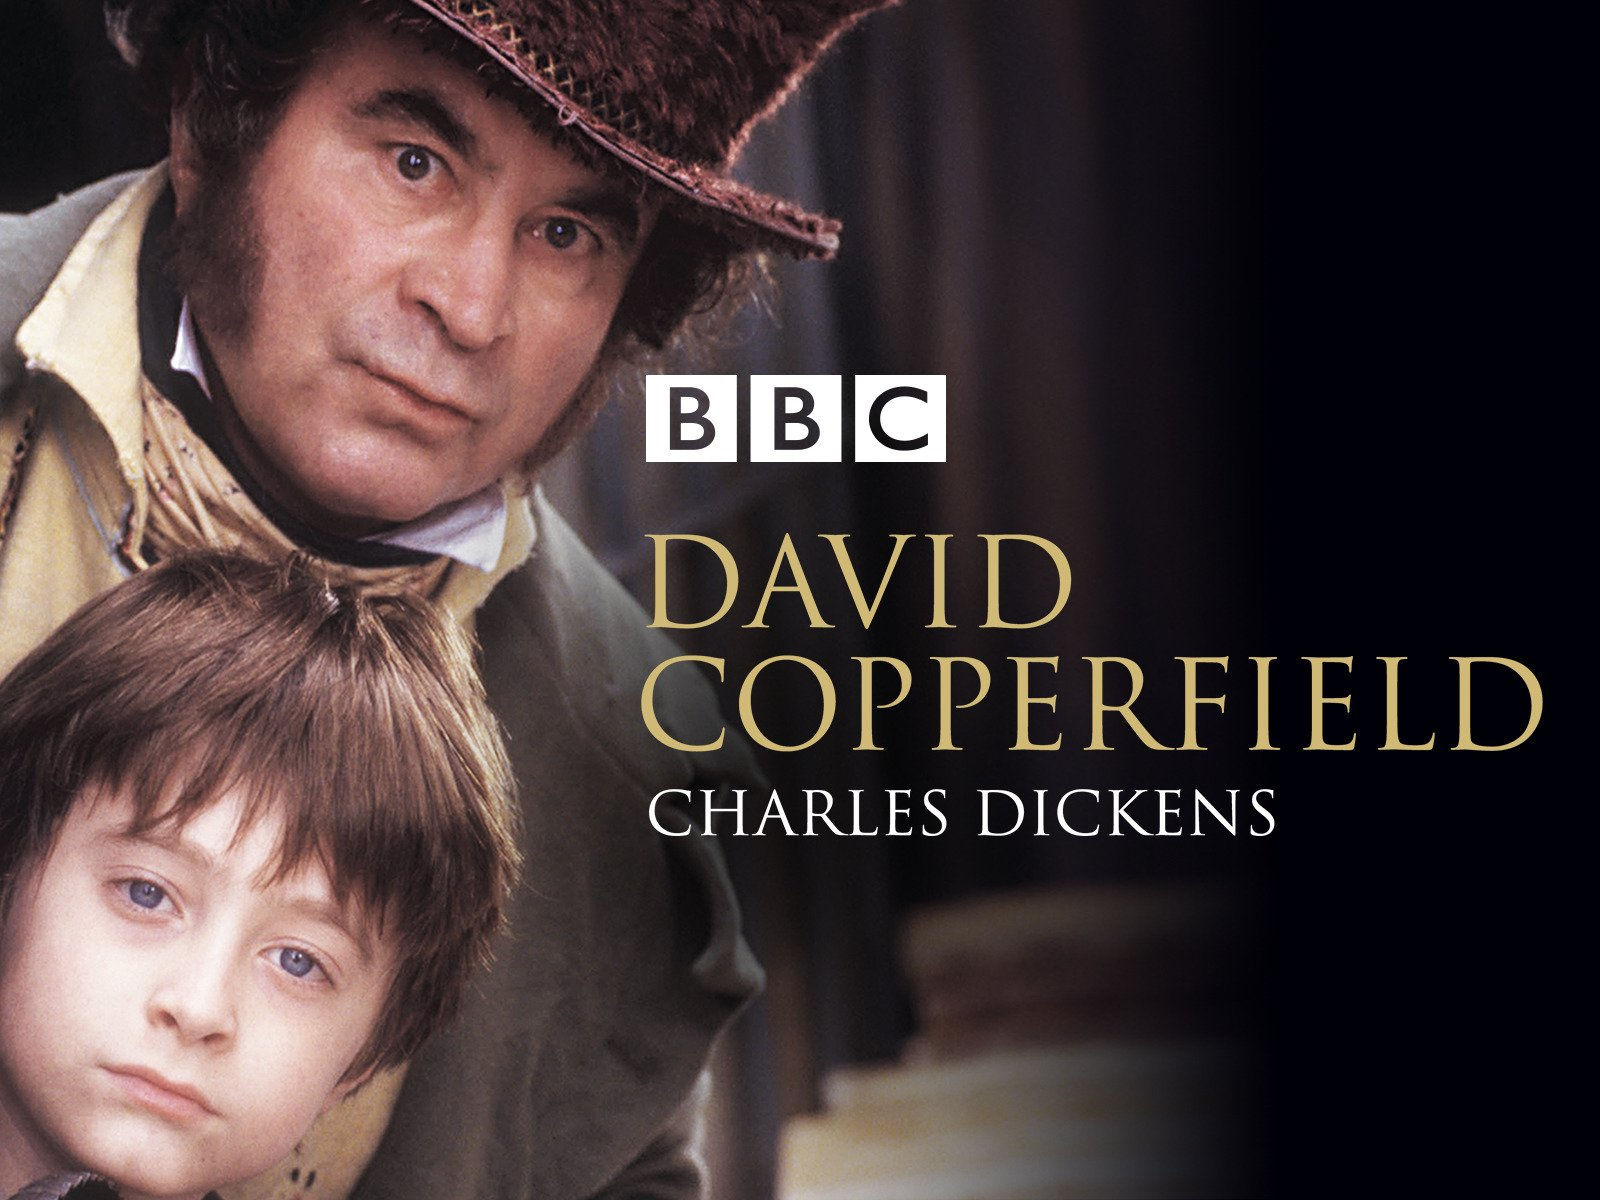 david copperfield 2000 full movie download